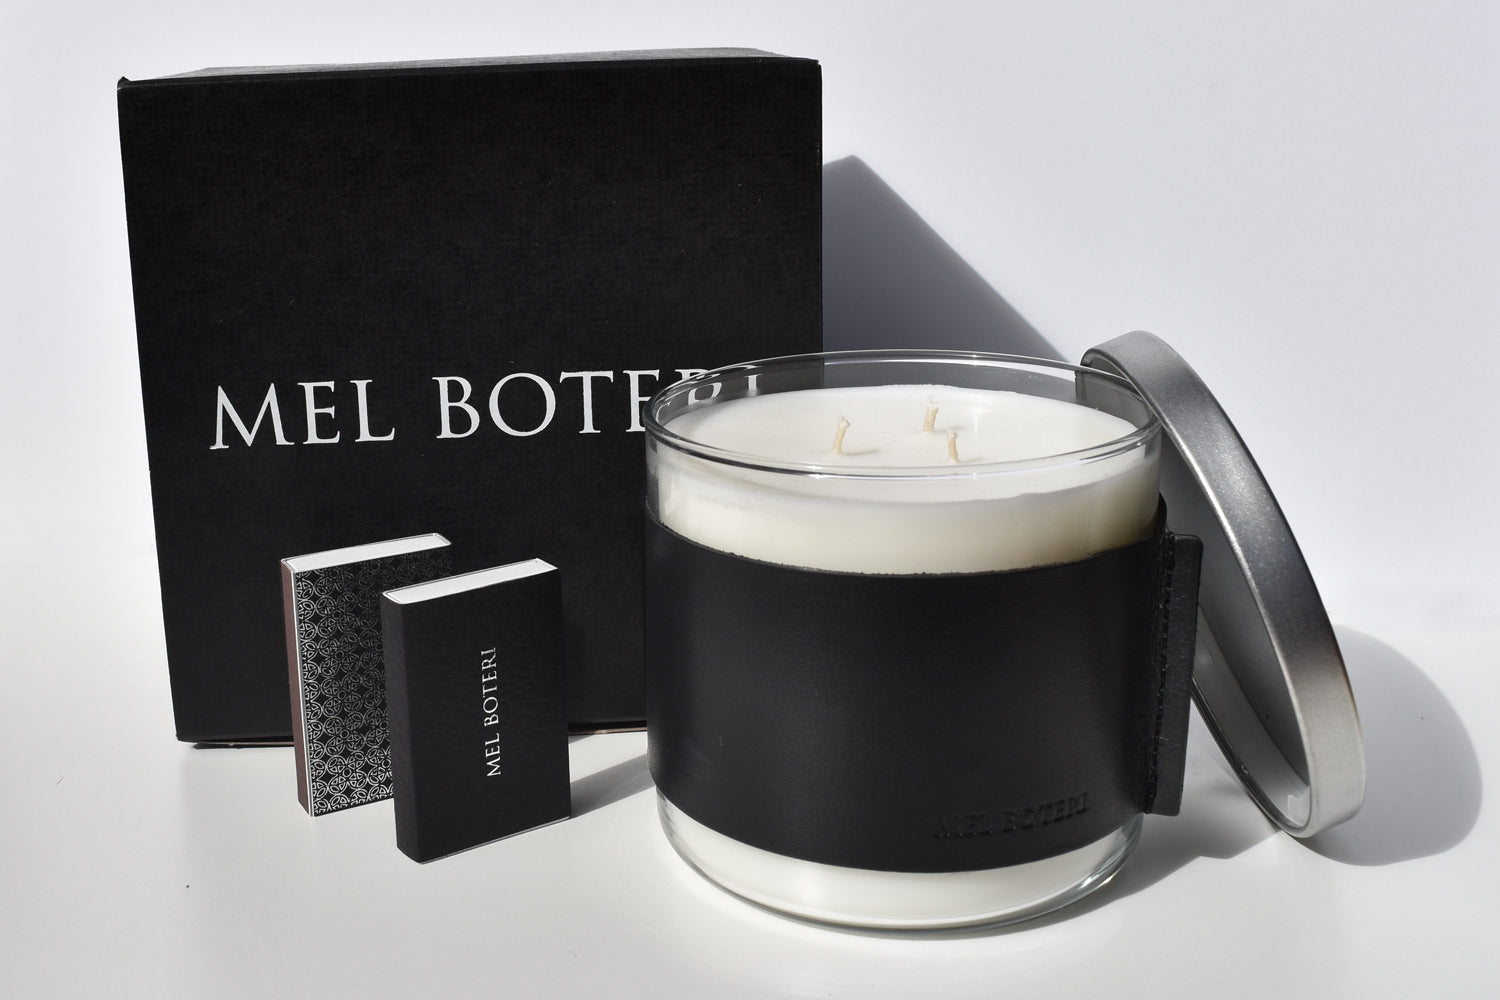 Oud & Bergamot Scented Candle | Mel Boteri Home Collection | Gift Set